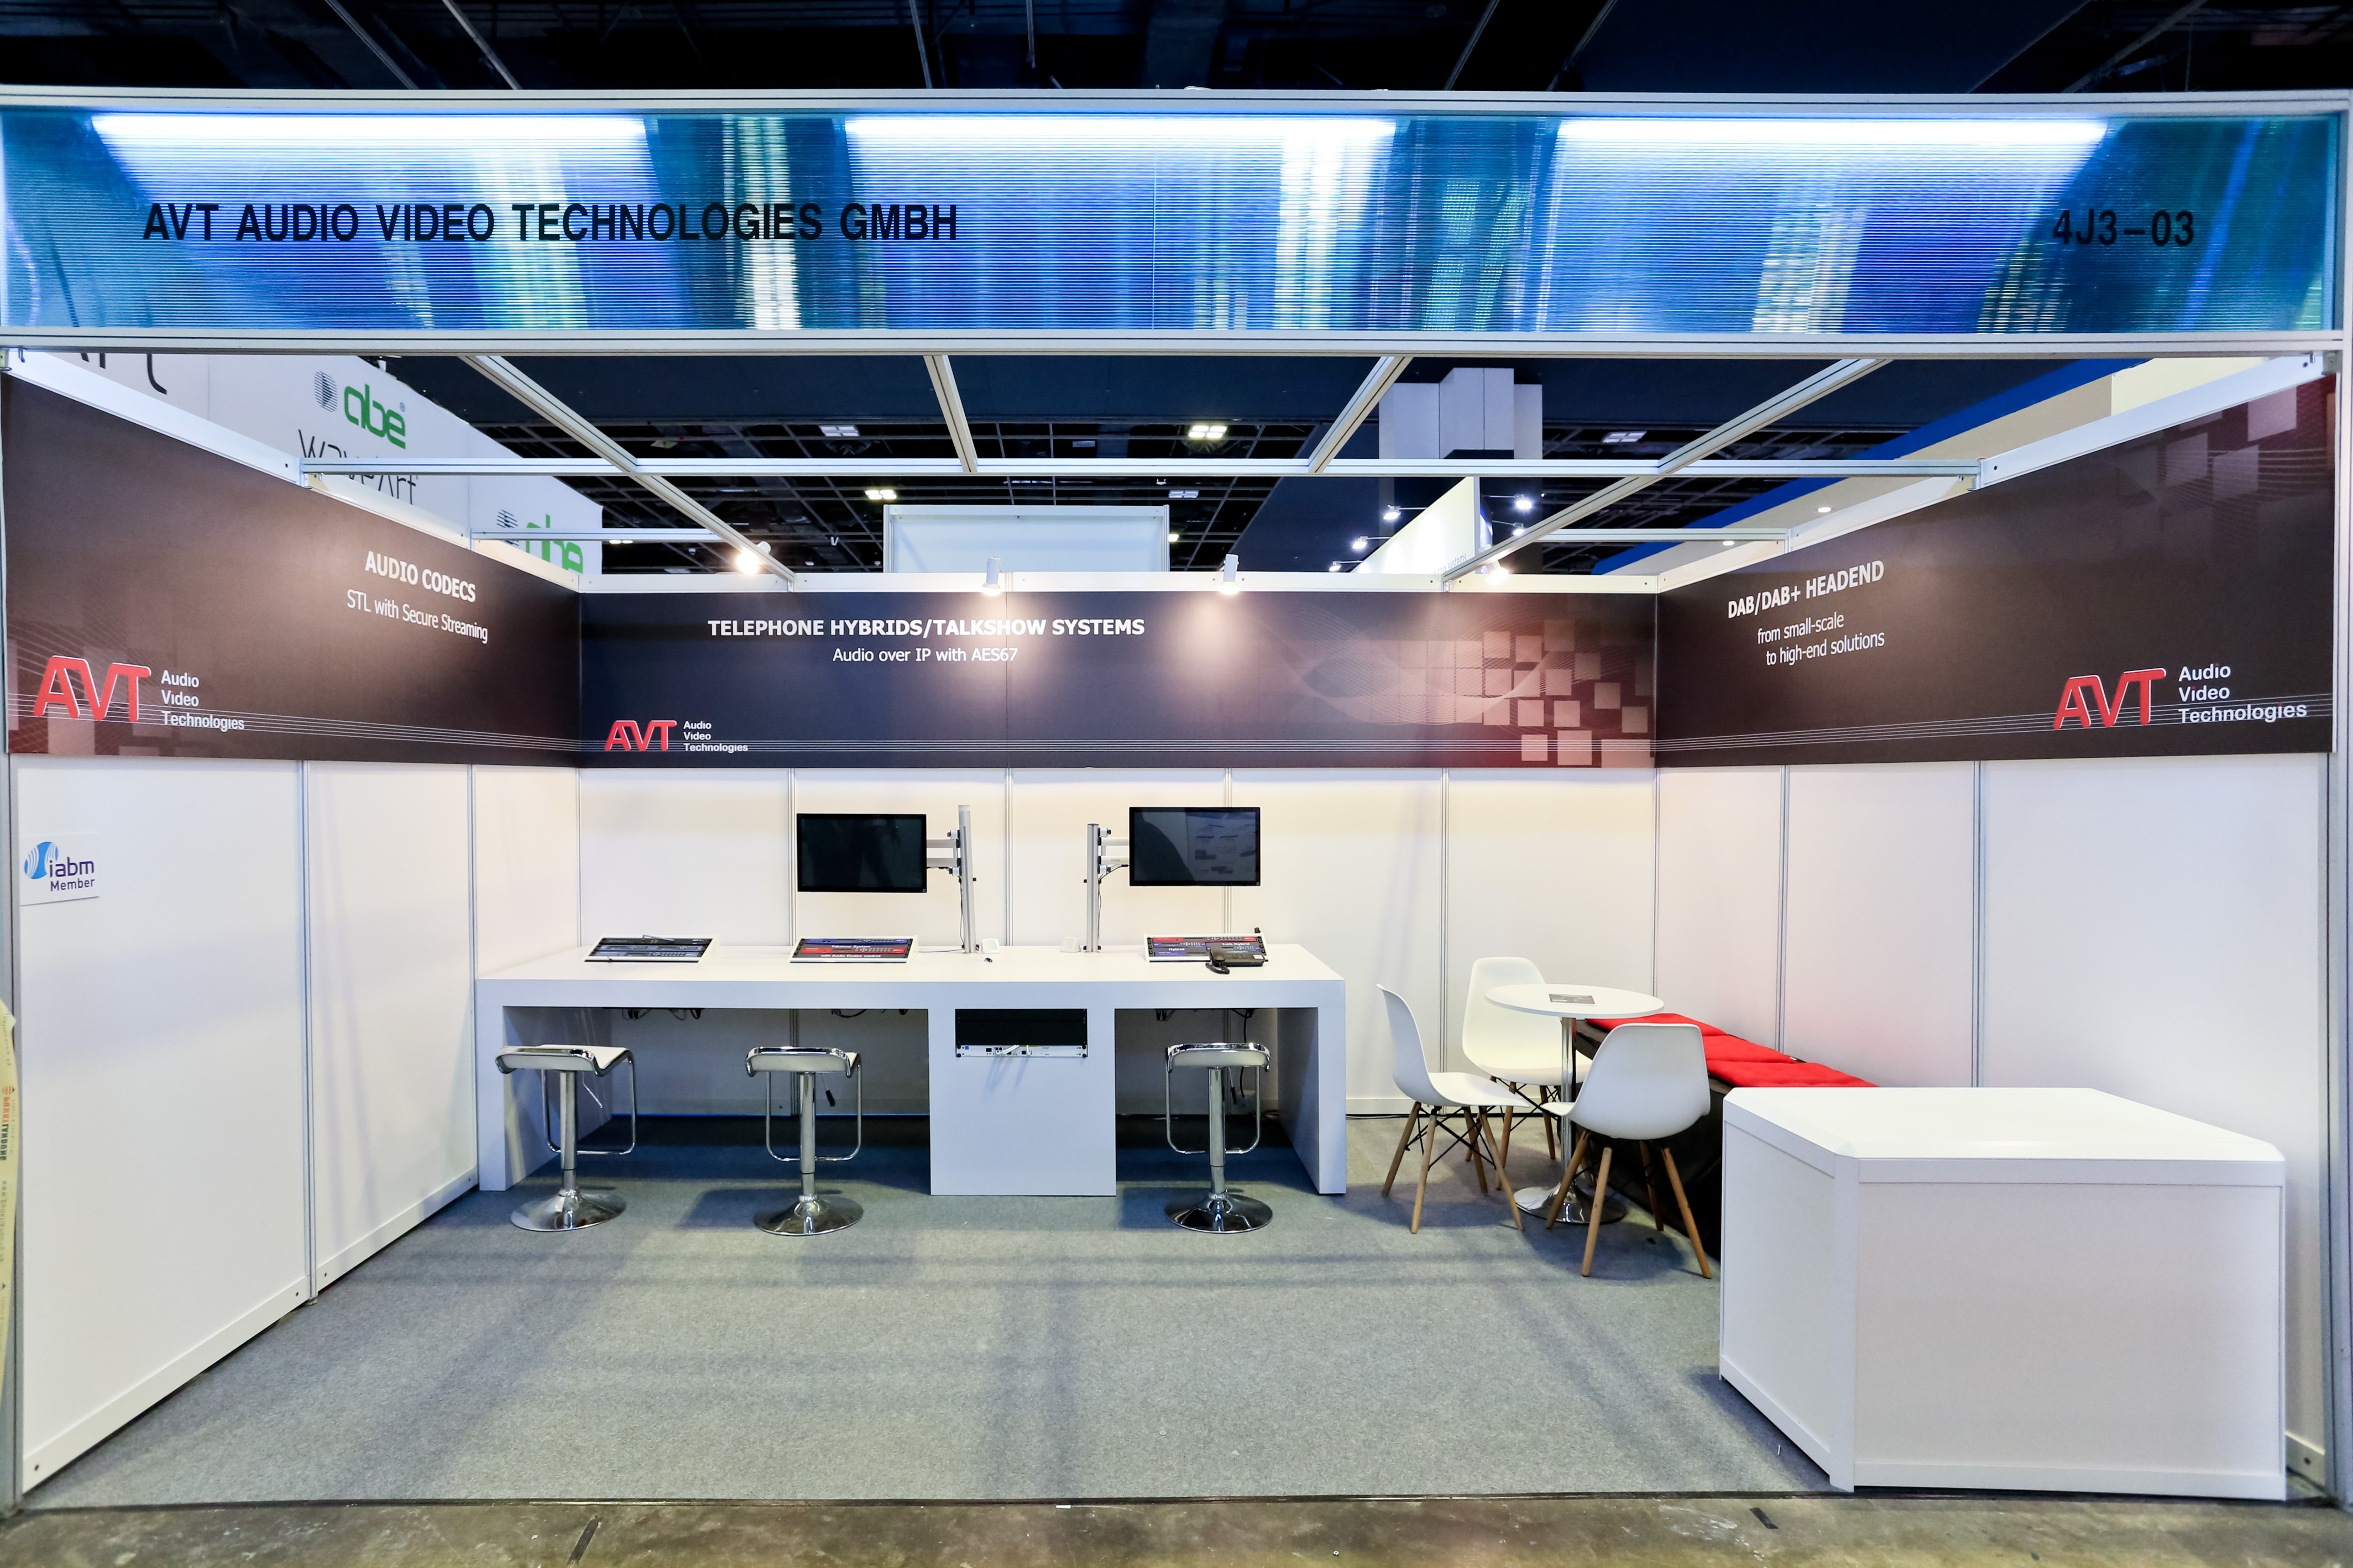 Exhibition Shell Scheme : Shell scheme or customized booth design a guide for new